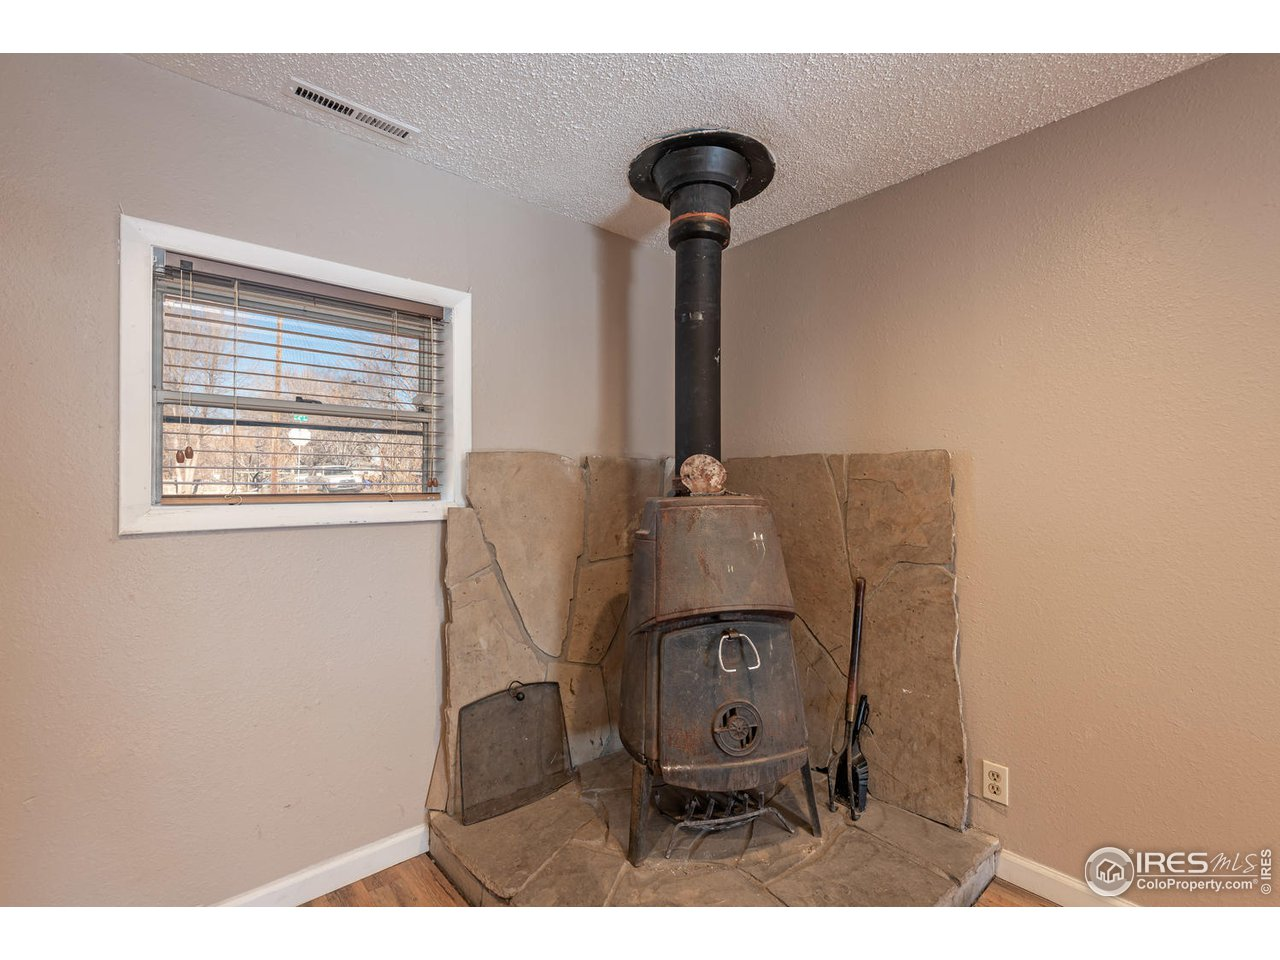 Wood stove for those chilly Colorado winter days